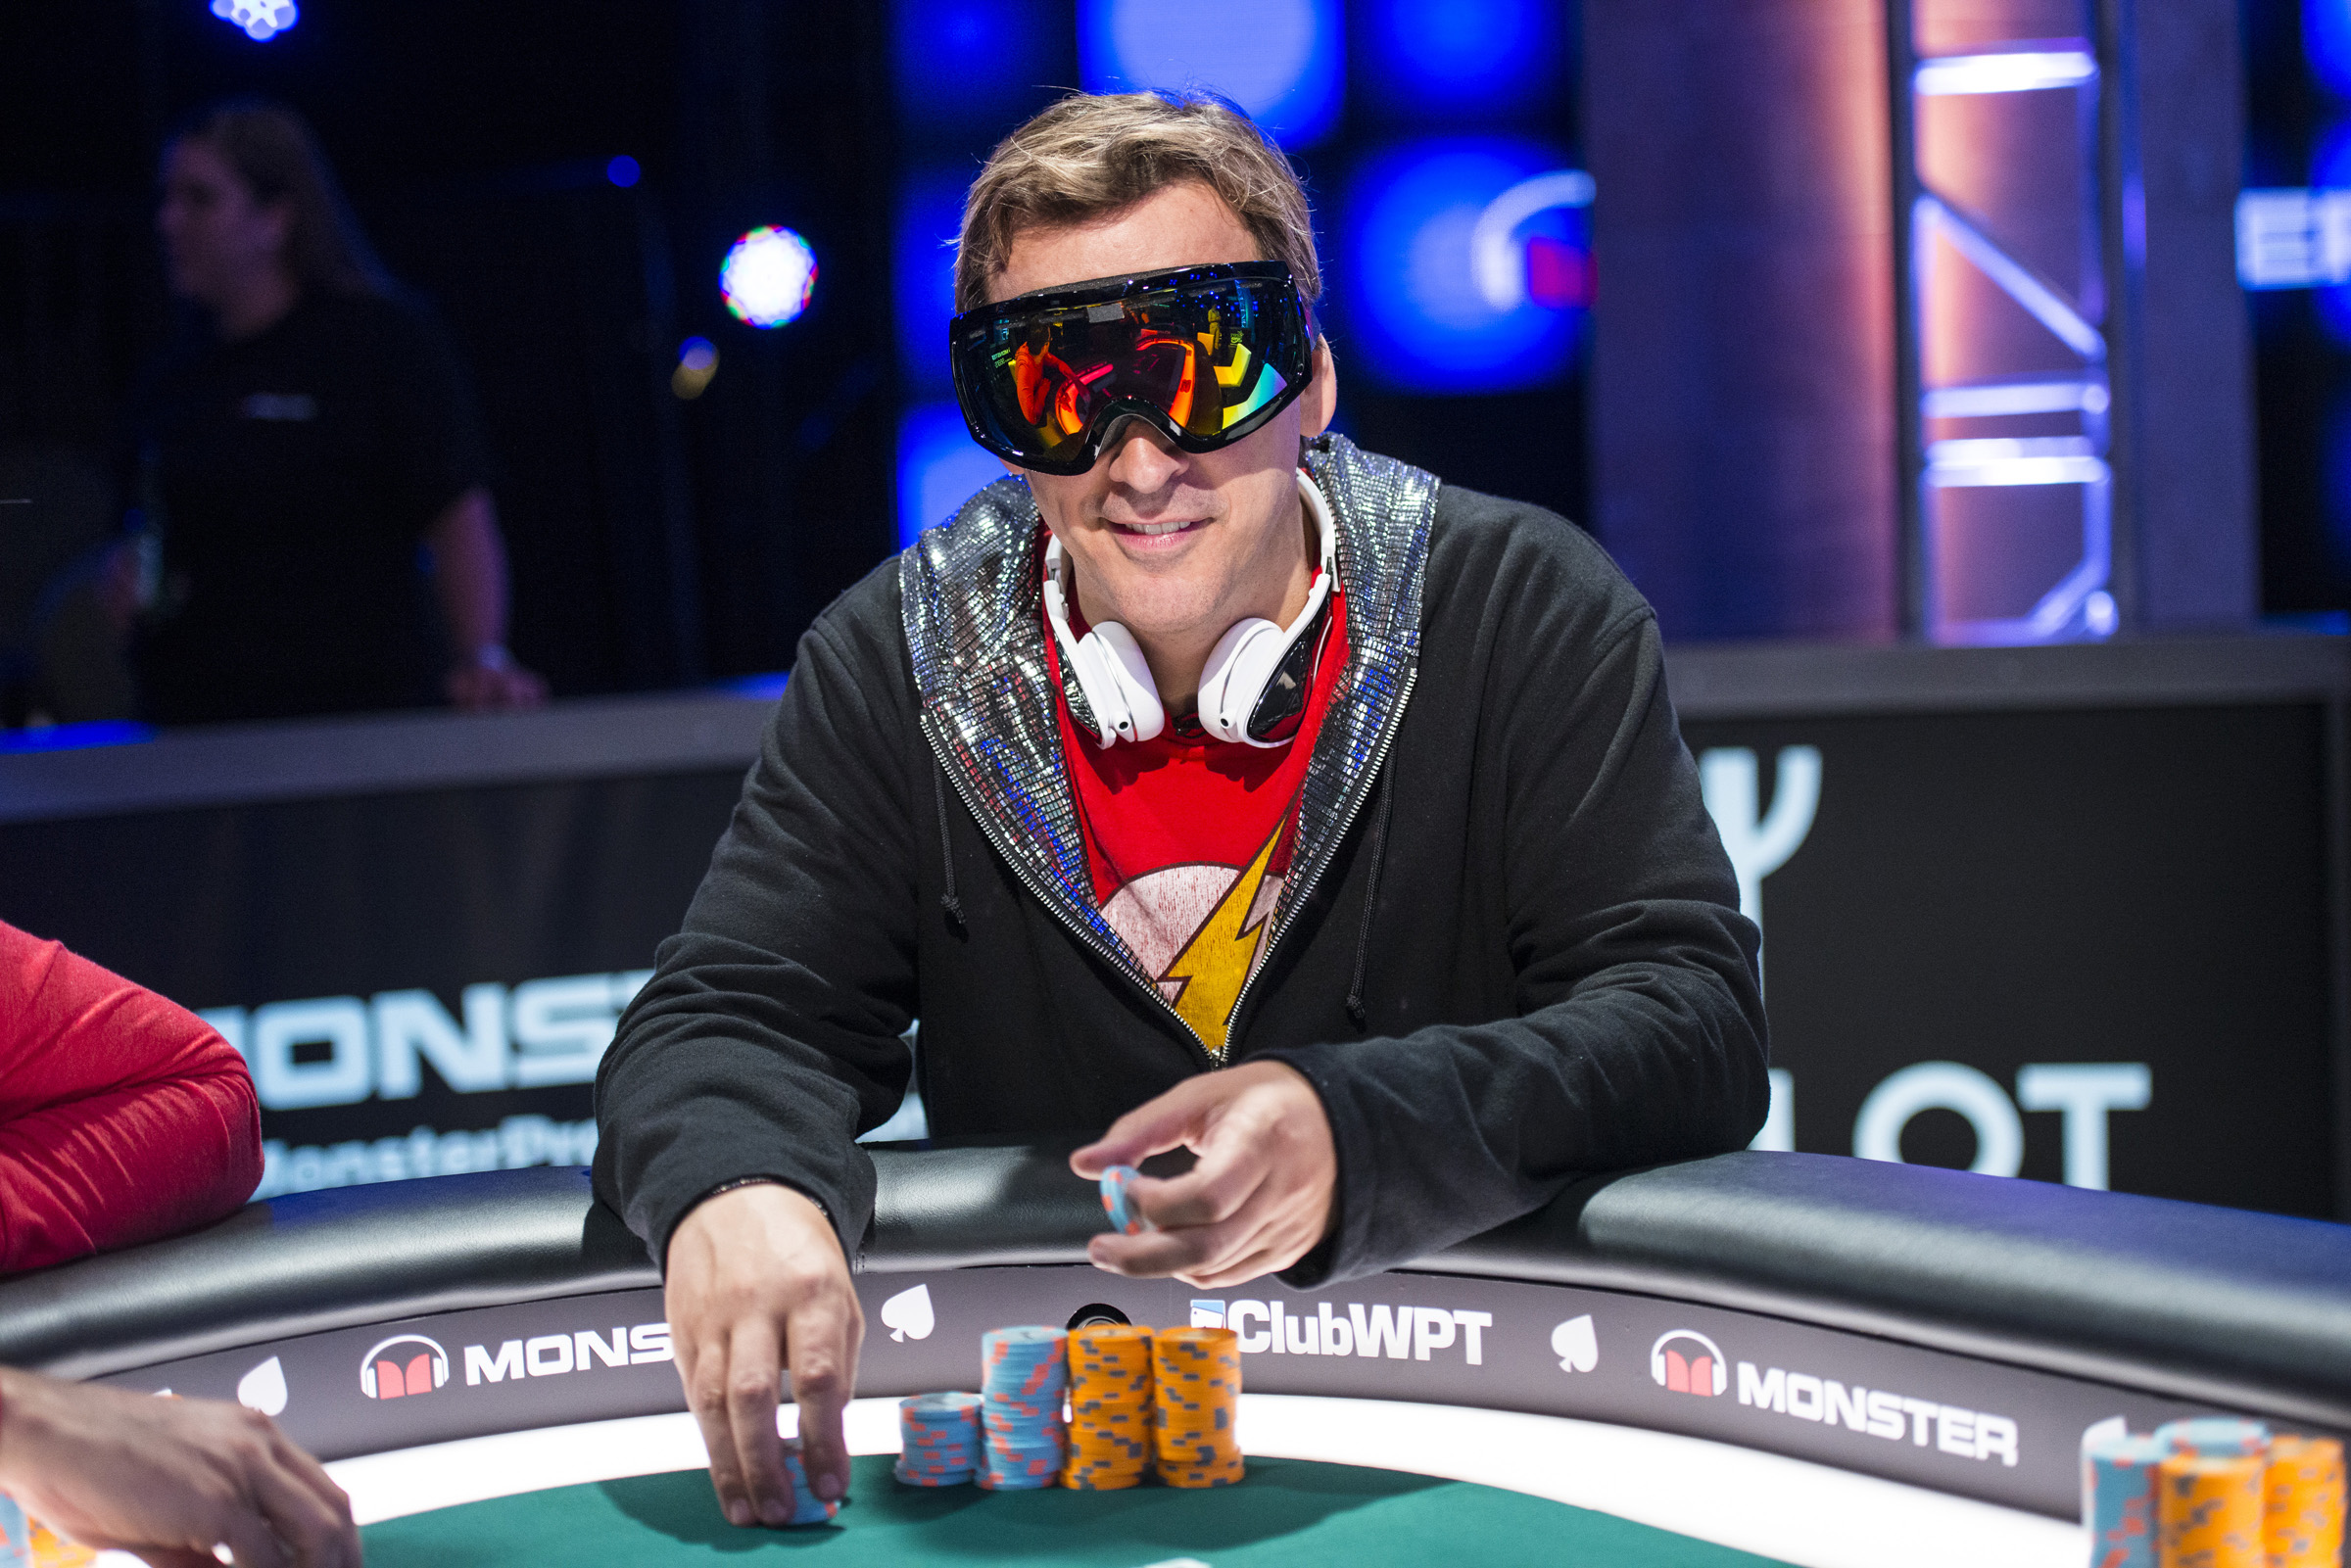 Face Masks a Bad Look for Poker Say Savage Facebook Followers